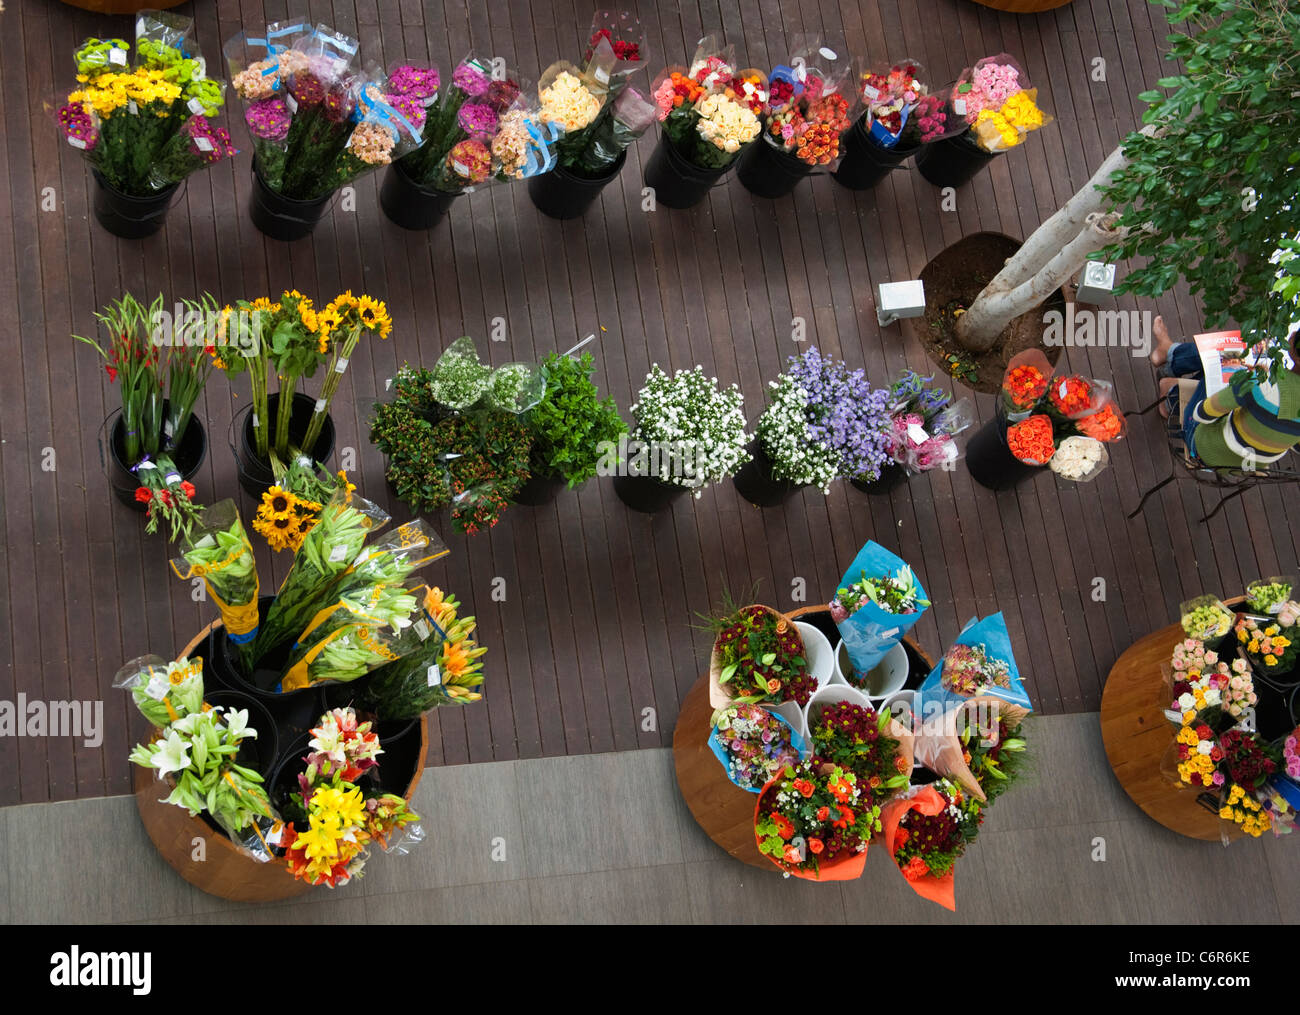 Overhead view of a cut flower stall in a Morningside, Sandton Shopping mall - Stock Image